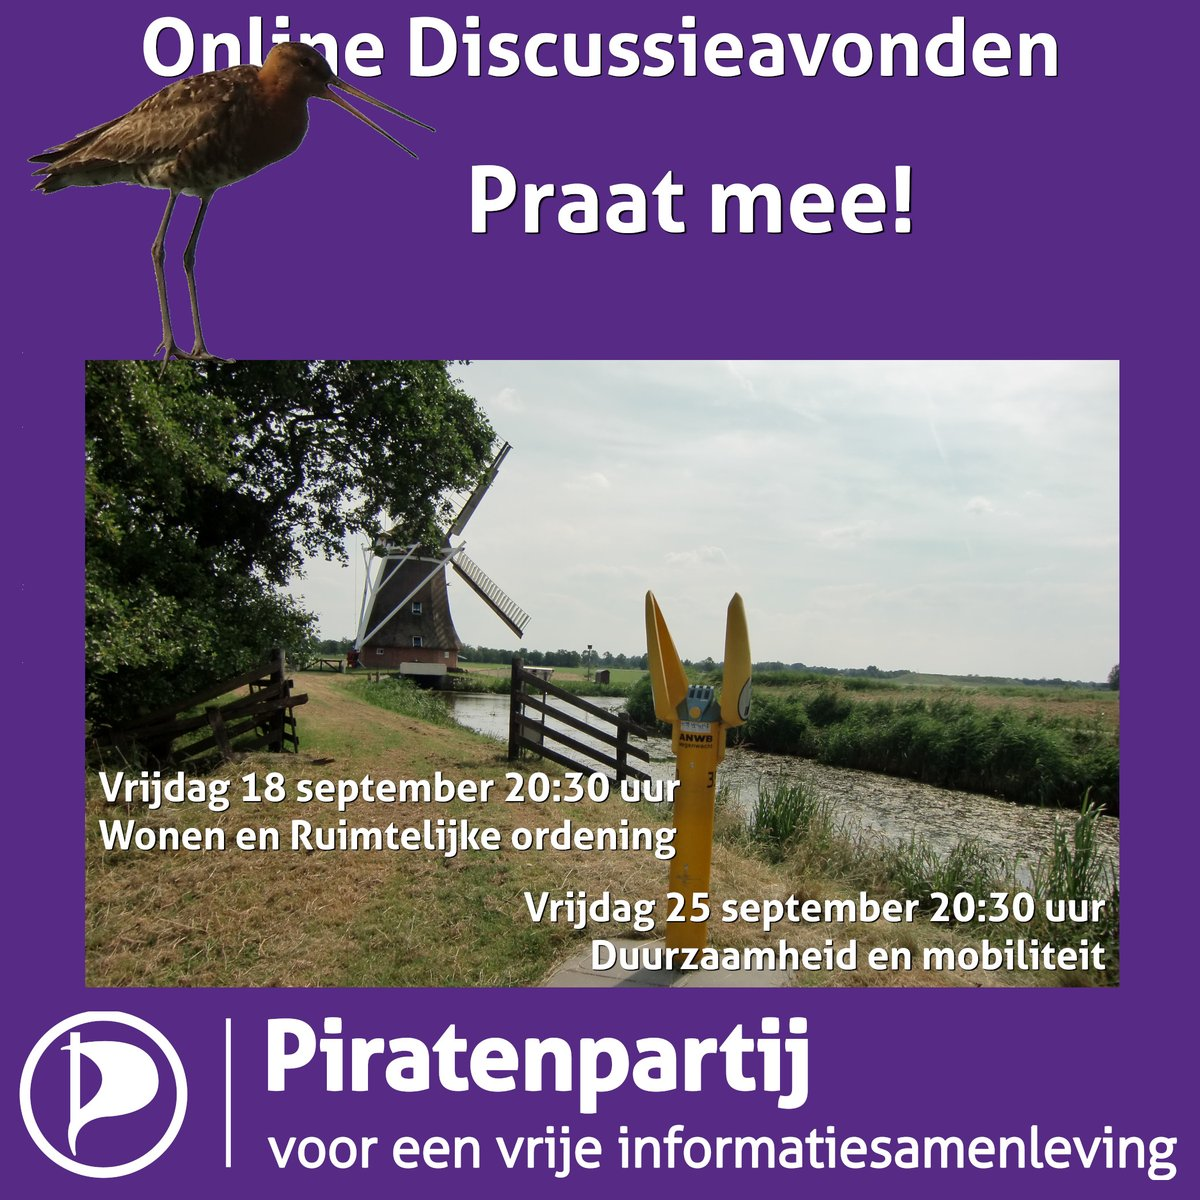 Online Discussieavonden  Vrijdag 18 september 20:30 uur Vrijdag 25 september 20:30 uur  Wonen en Ruimtelijke ordening & Duurzaamheid en mobiliteit  #discussie #piratenpartij #piraten  Praat mee! https://t.co/D3yeA4DUa3 https://t.co/A2XrMUequF